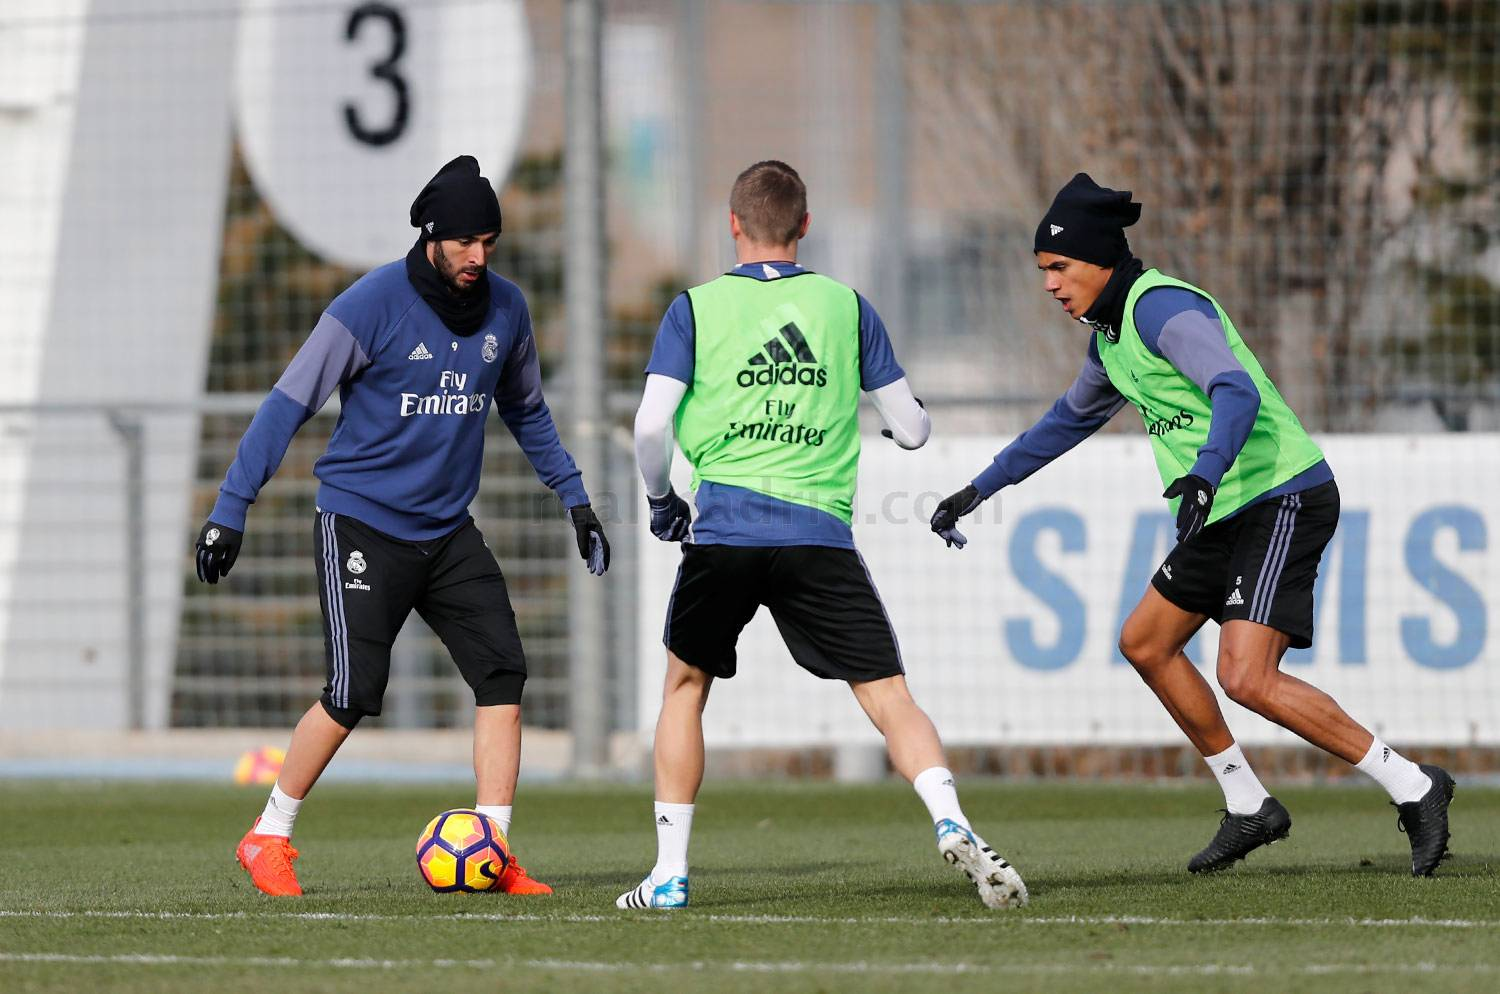 Real Madrid - Entrenamiento del Real Madrid - 20-01-2017